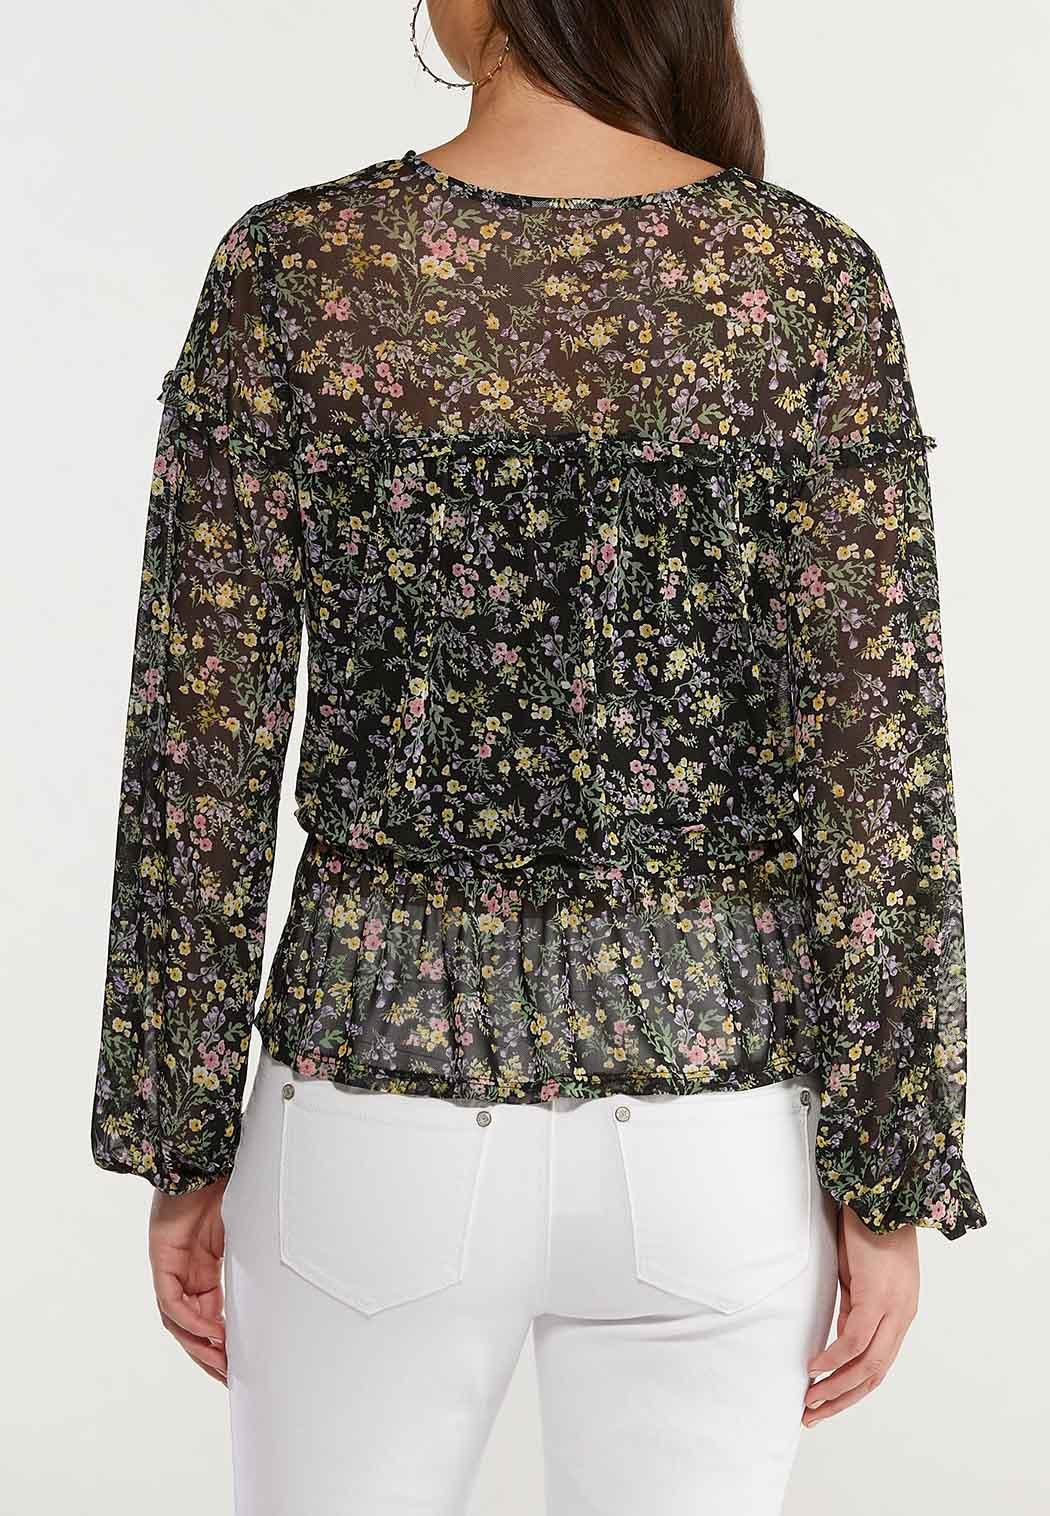 Plus Size Sheer Floral Peplum Top (Item #44517005)